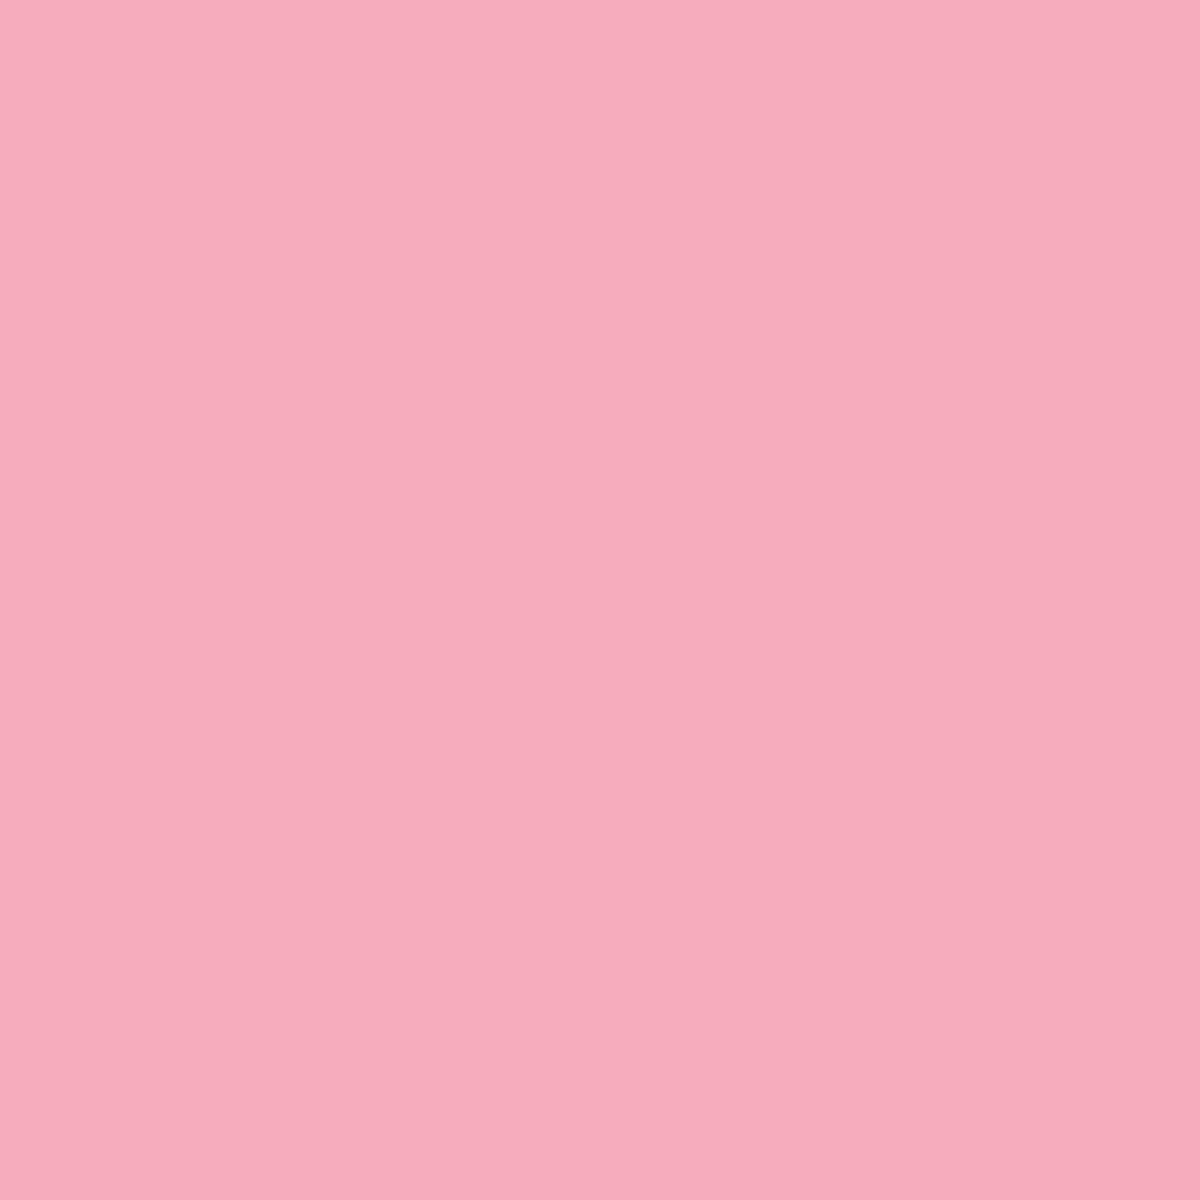 Solid Gift Wrap Wrapping Paper, Matte Pastel Pink (8 Rolls 5ft x 30in)